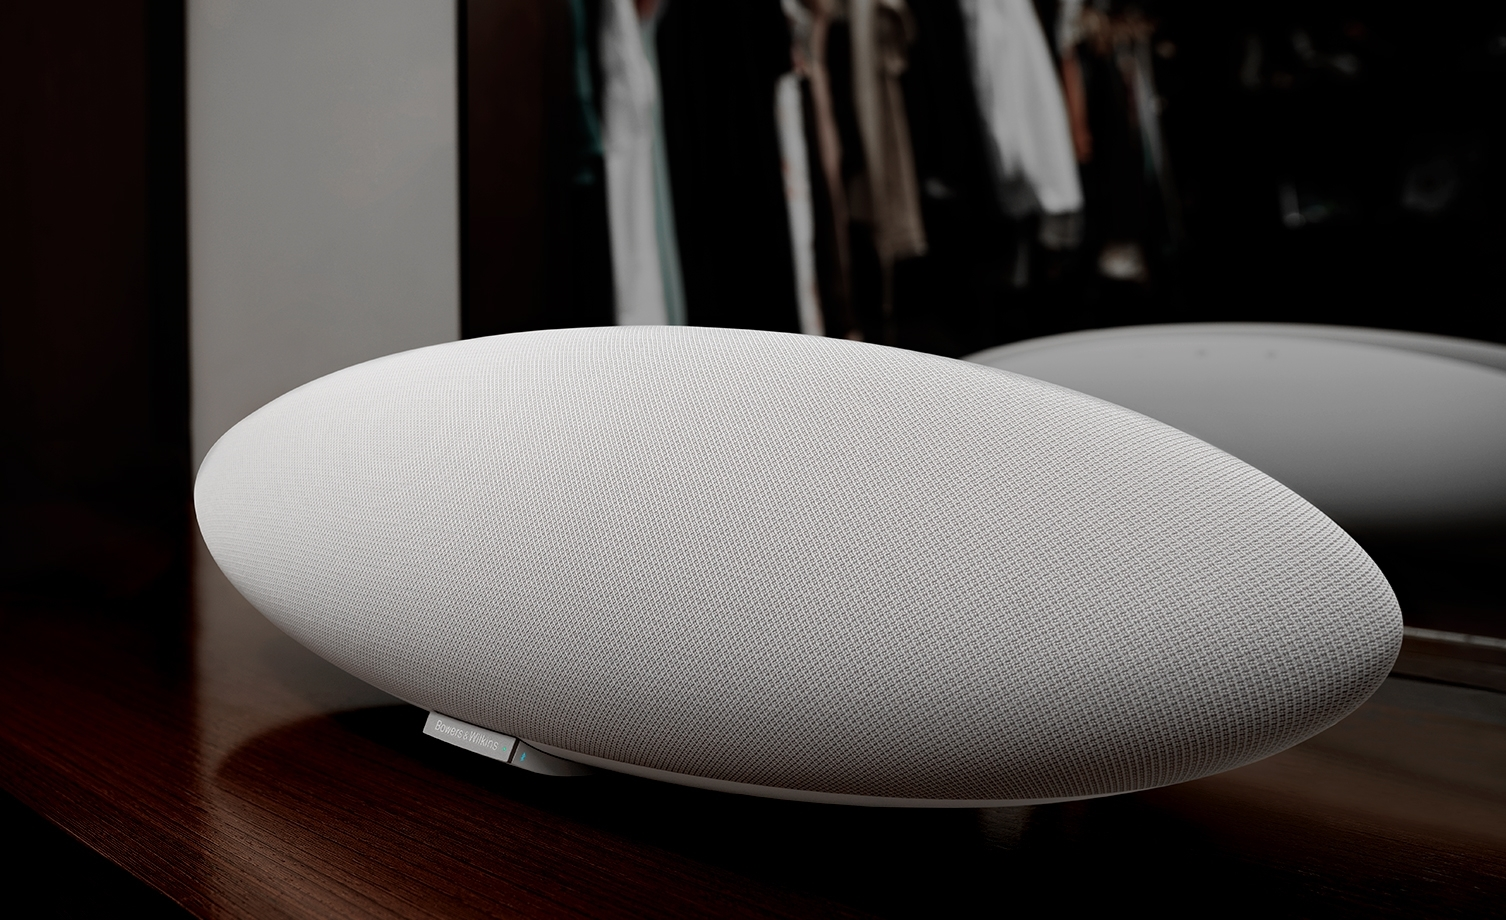 Loa Bowers & Wilkins Zeppelin Mini